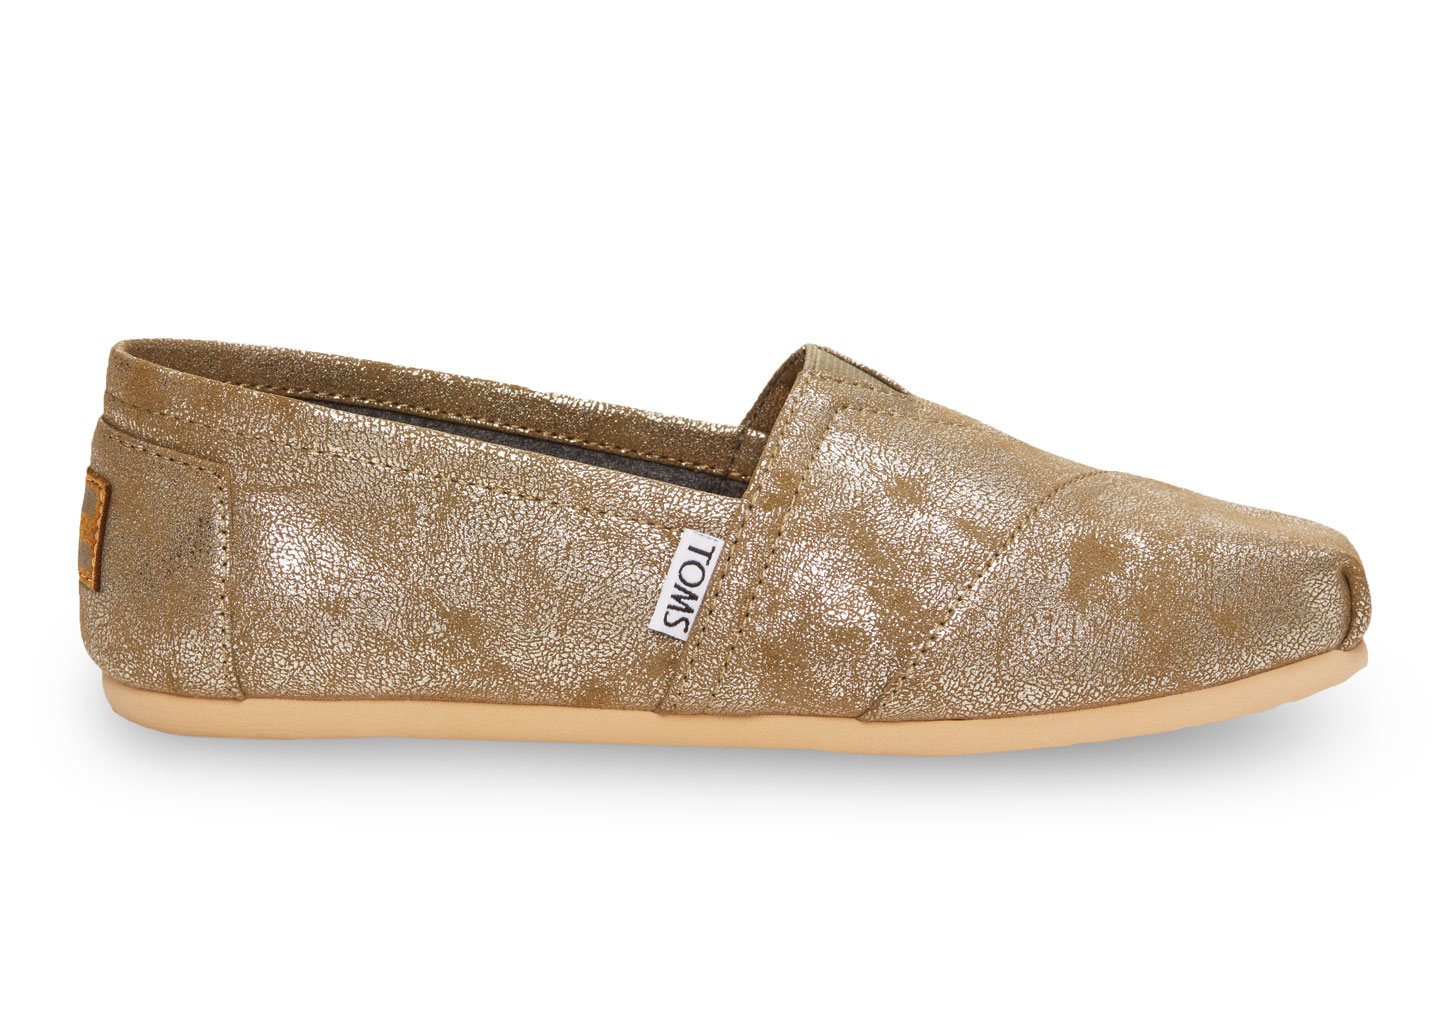 b4fc1596e2f Lyst - TOMS Brass Metallic Synthetic Leather Women s Classics in ...